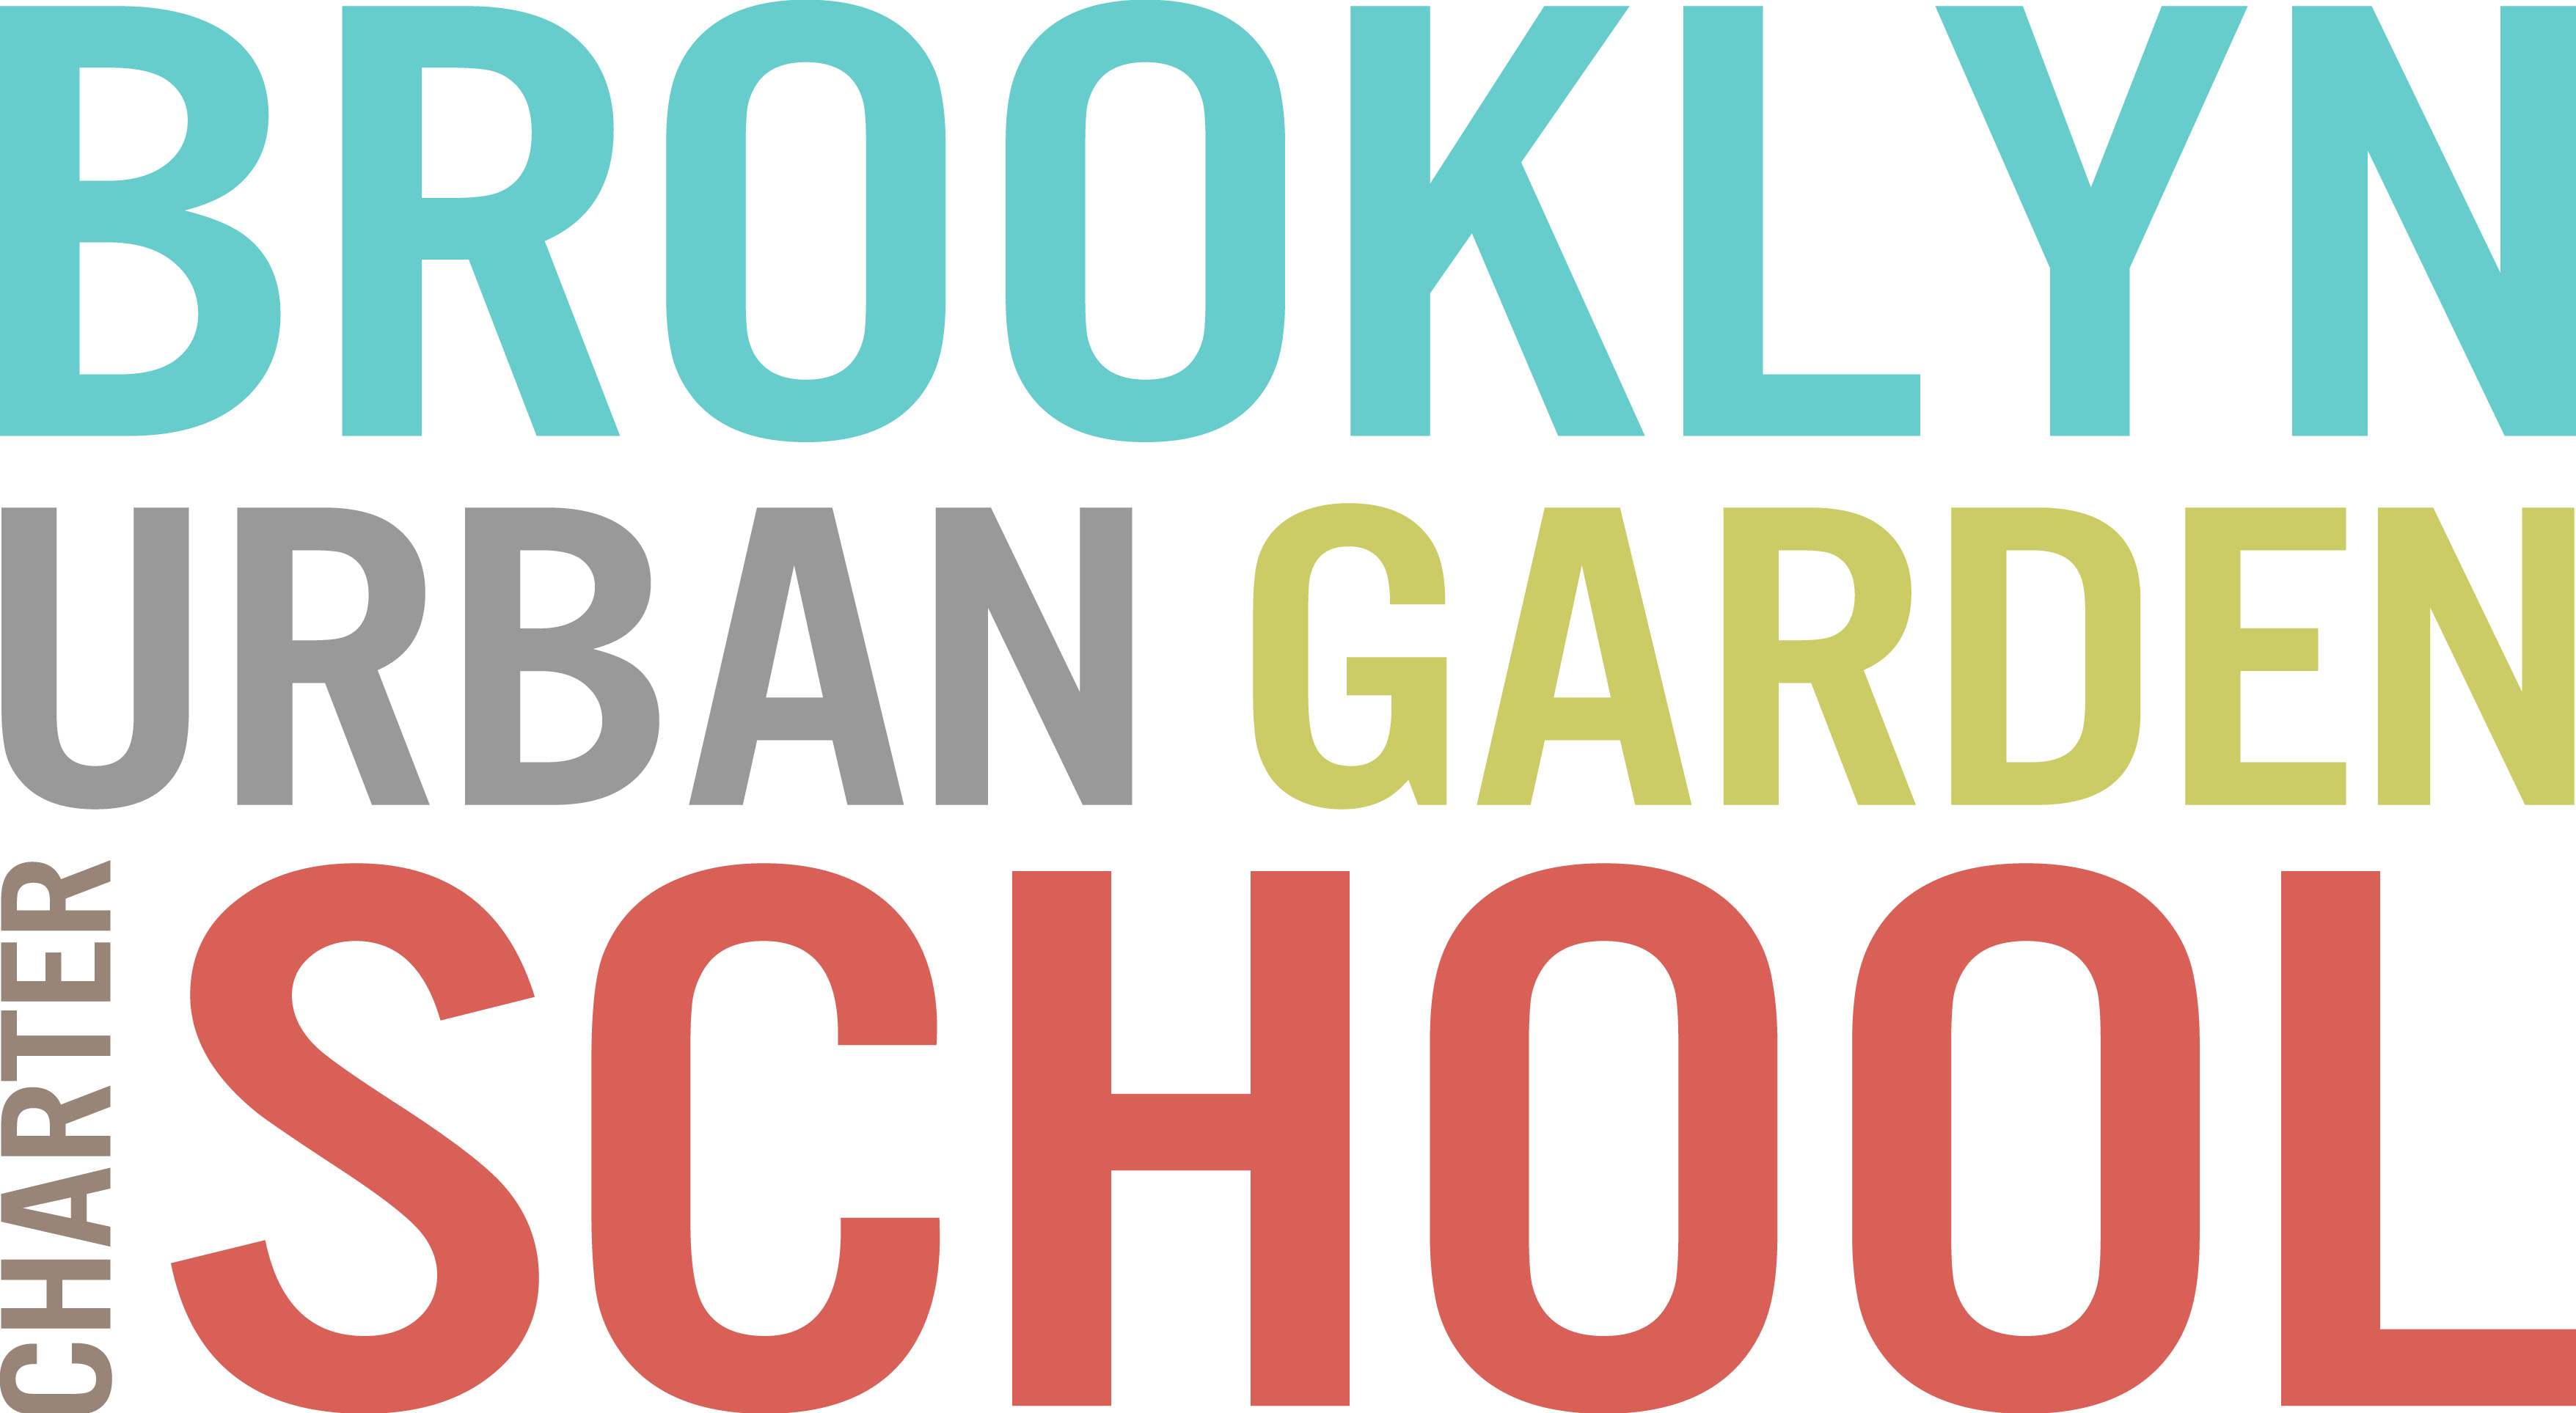 Brooklyn Urban Garden Charter School